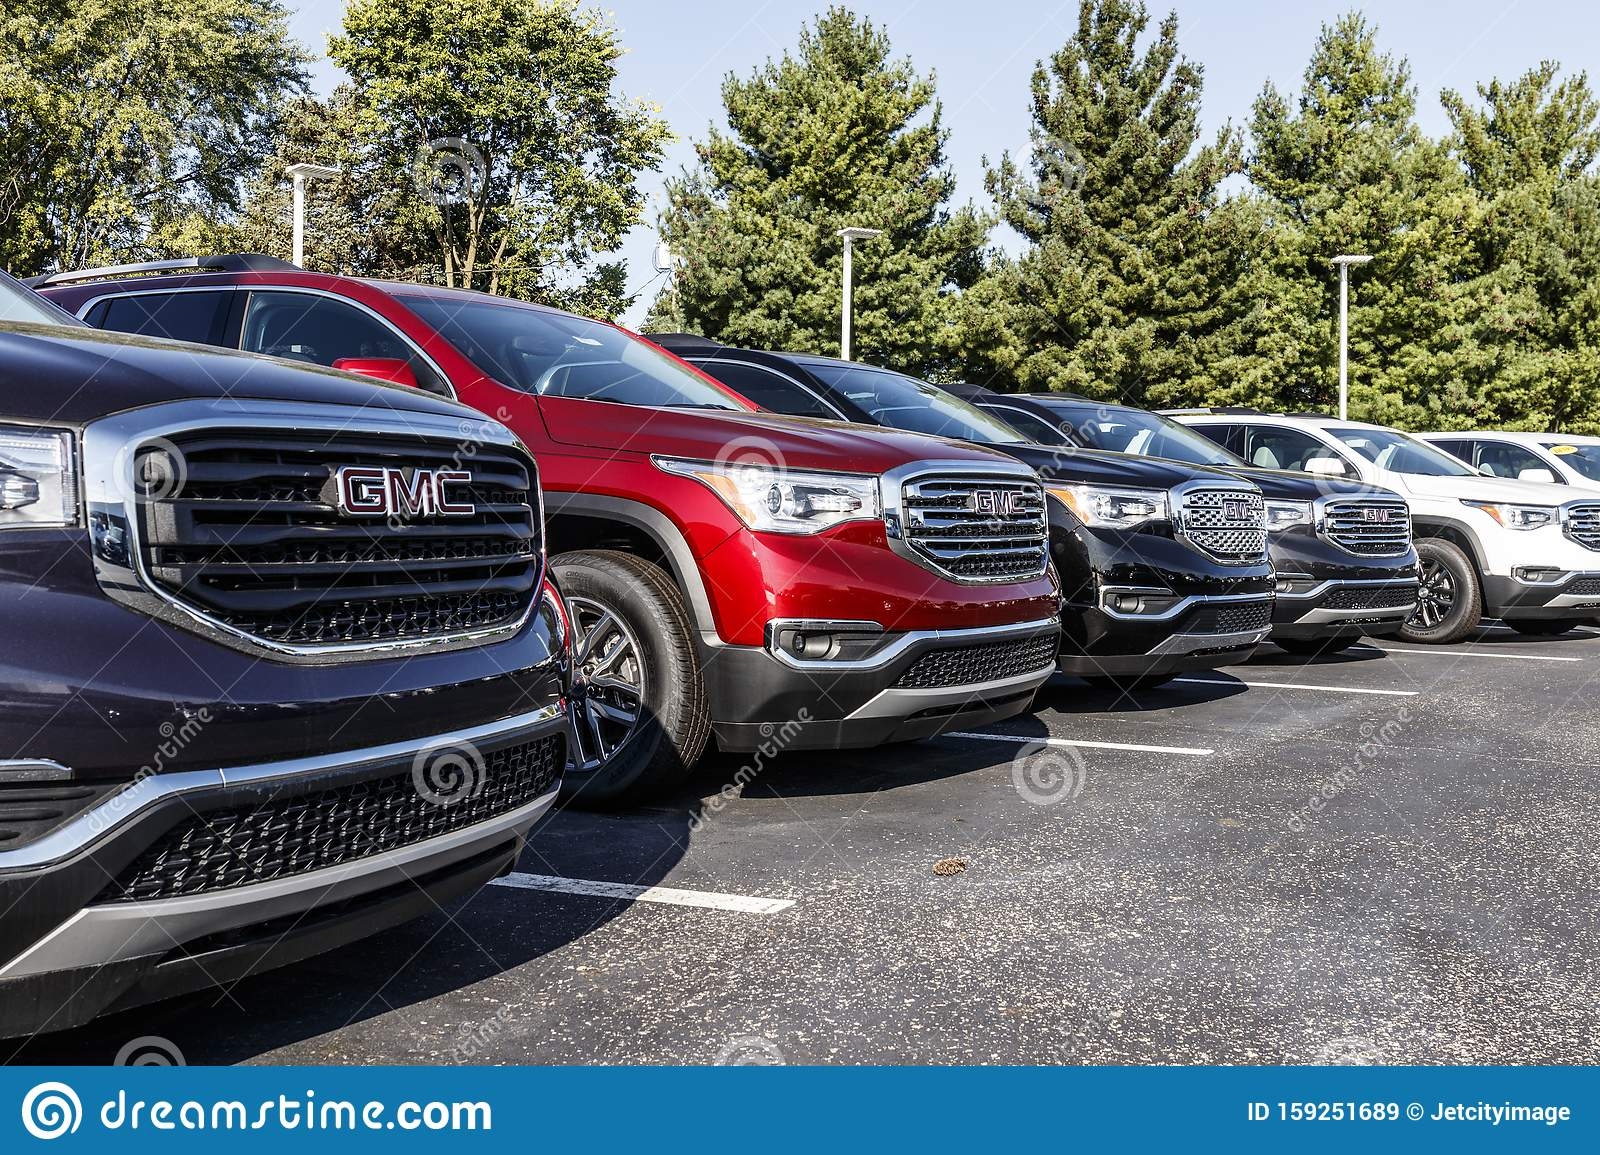 GMC SUV Display At A Buick GMC Dealership. GMC Focuses On ...